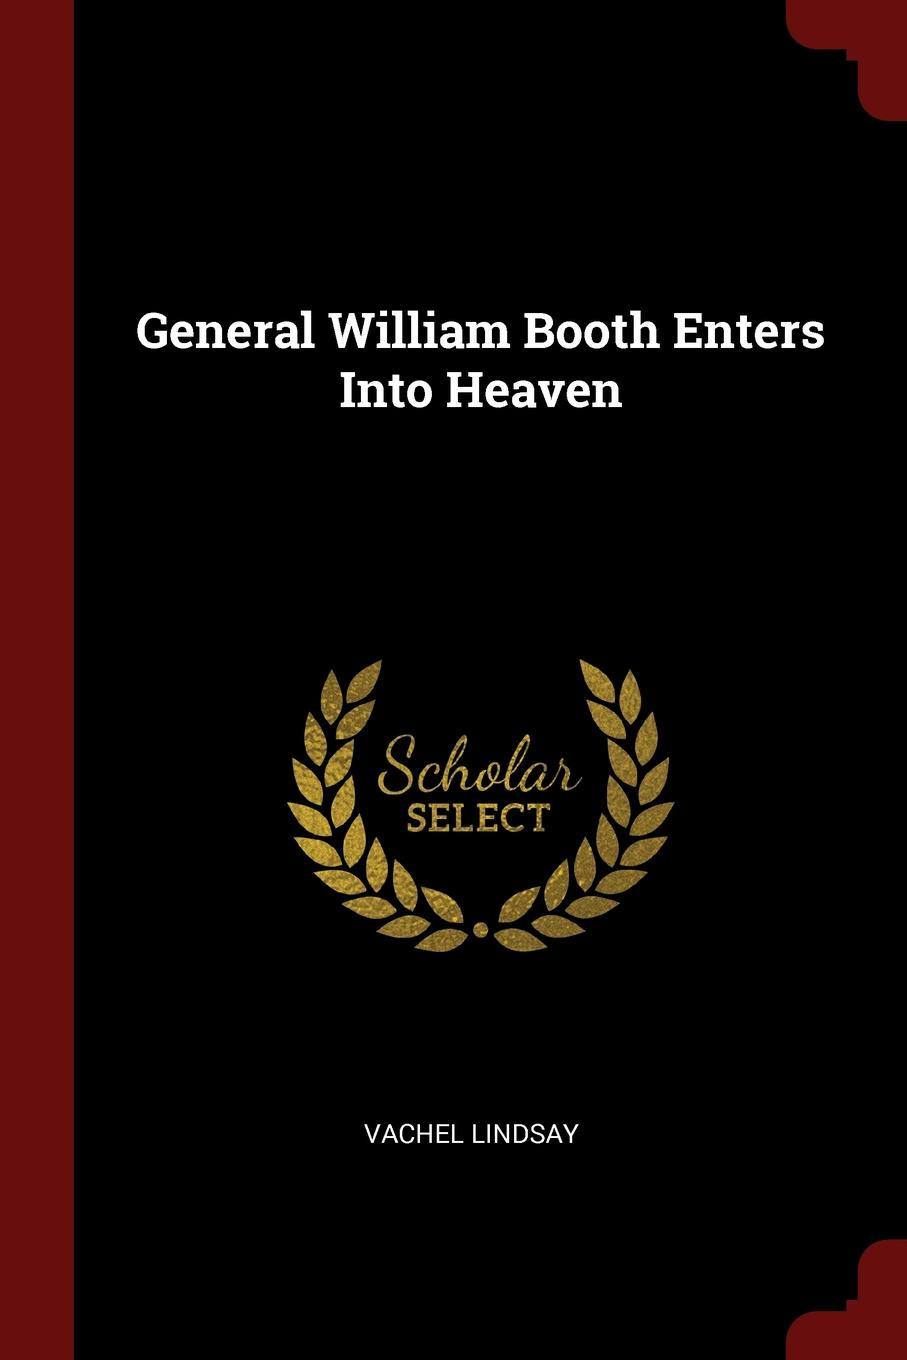 General William Booth Enters Into Heaven. Vachel Lindsay